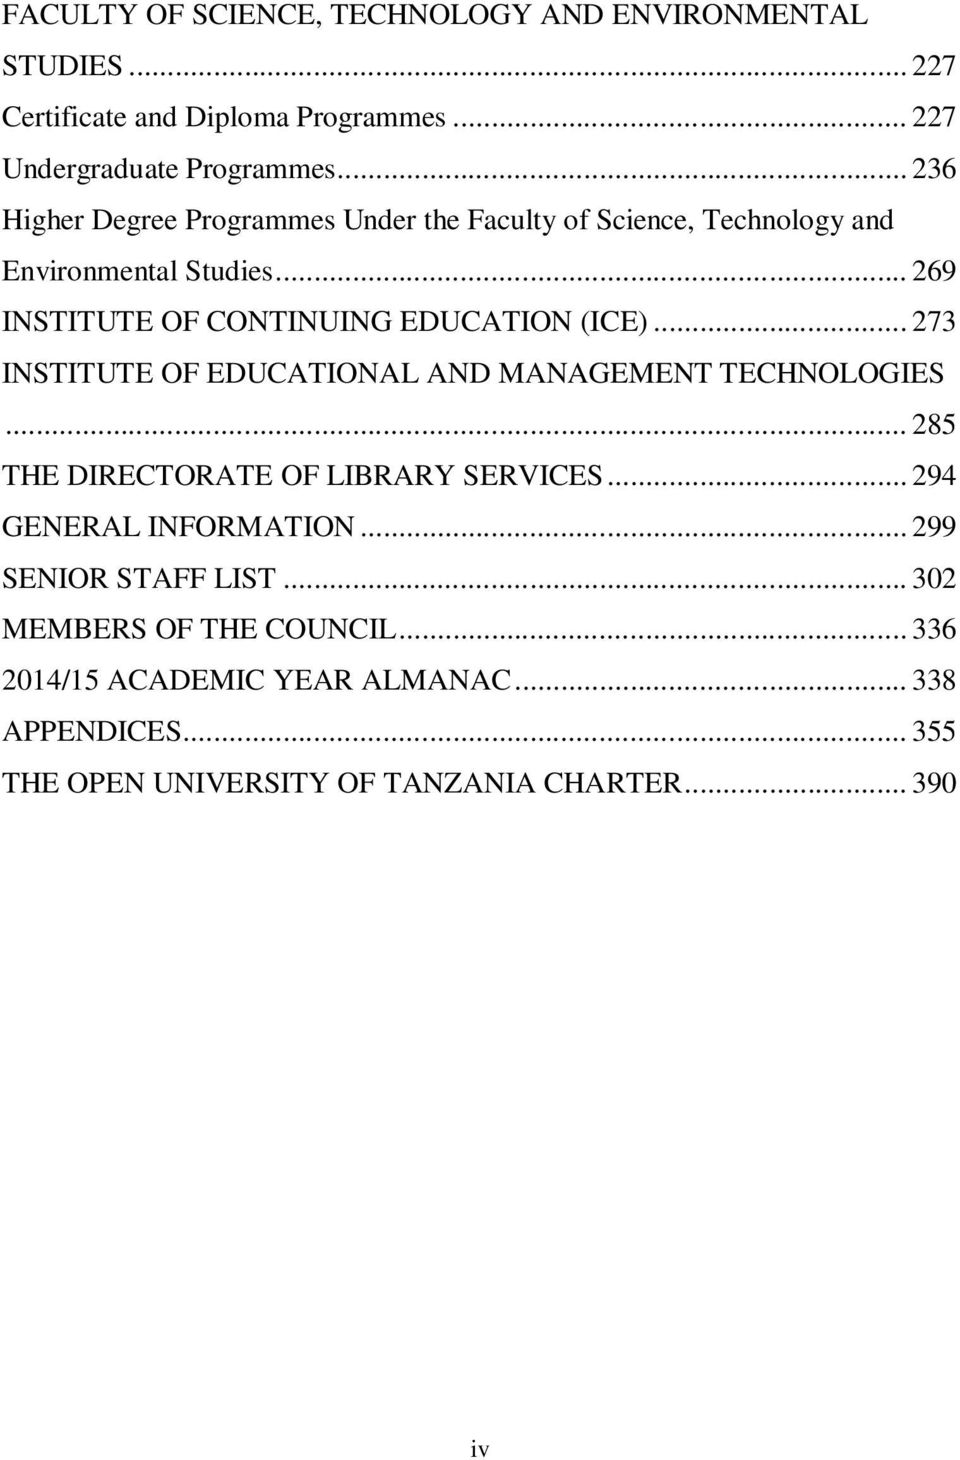 .. 273 INSTITUTE OF EDUCATIONAL AND MANAGEMENT TECHNOLOGIES... 285 THE DIRECTORATE OF LIBRARY SERVICES... 294 GENERAL INFORMATION.